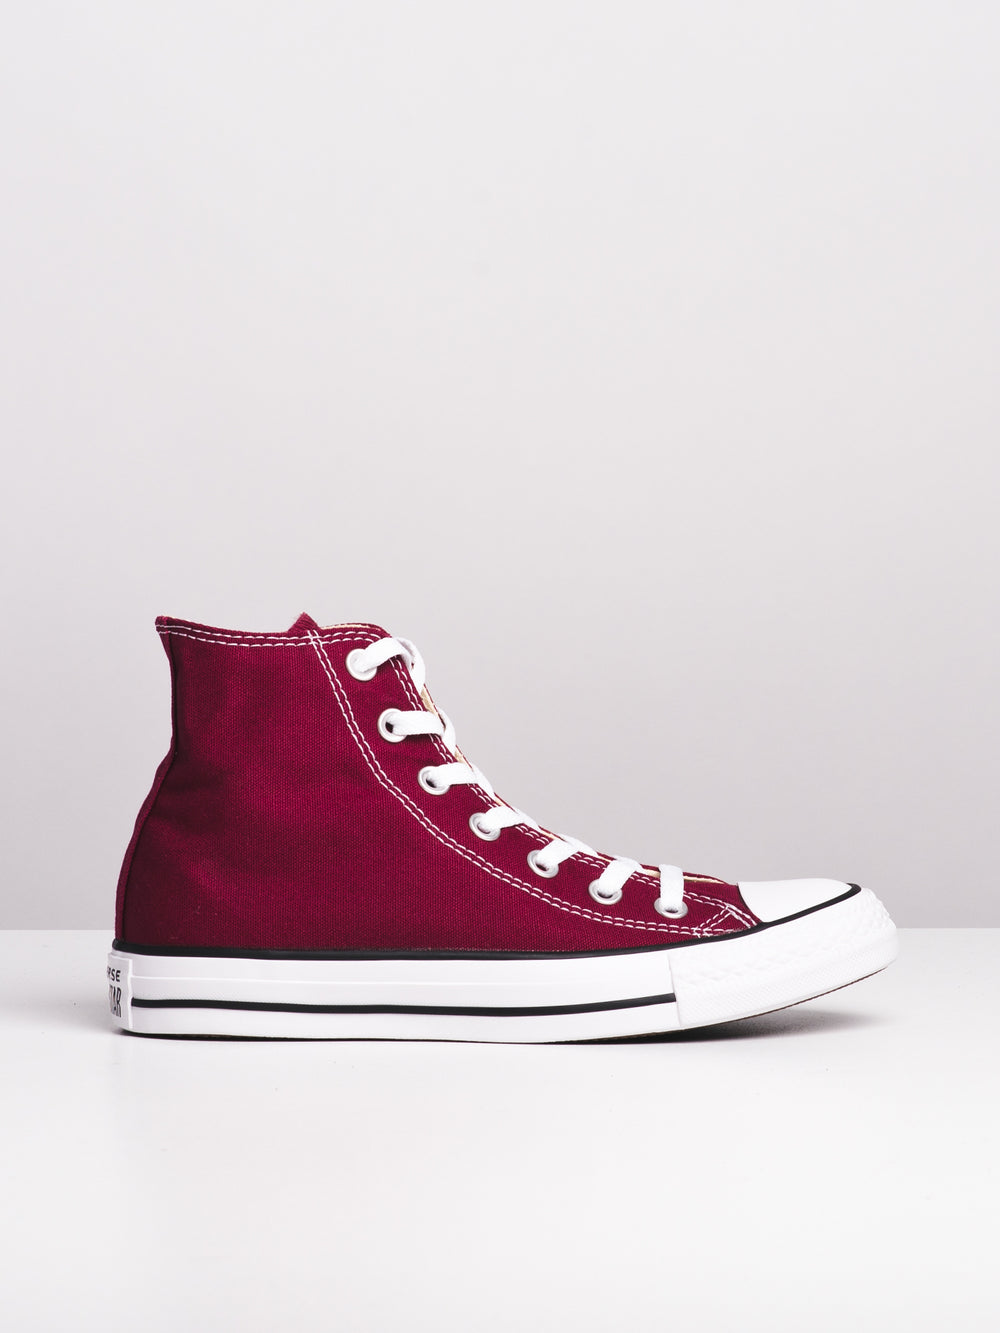 WOMENS CTAS SHORELINE - MAROON - CLEARANCE